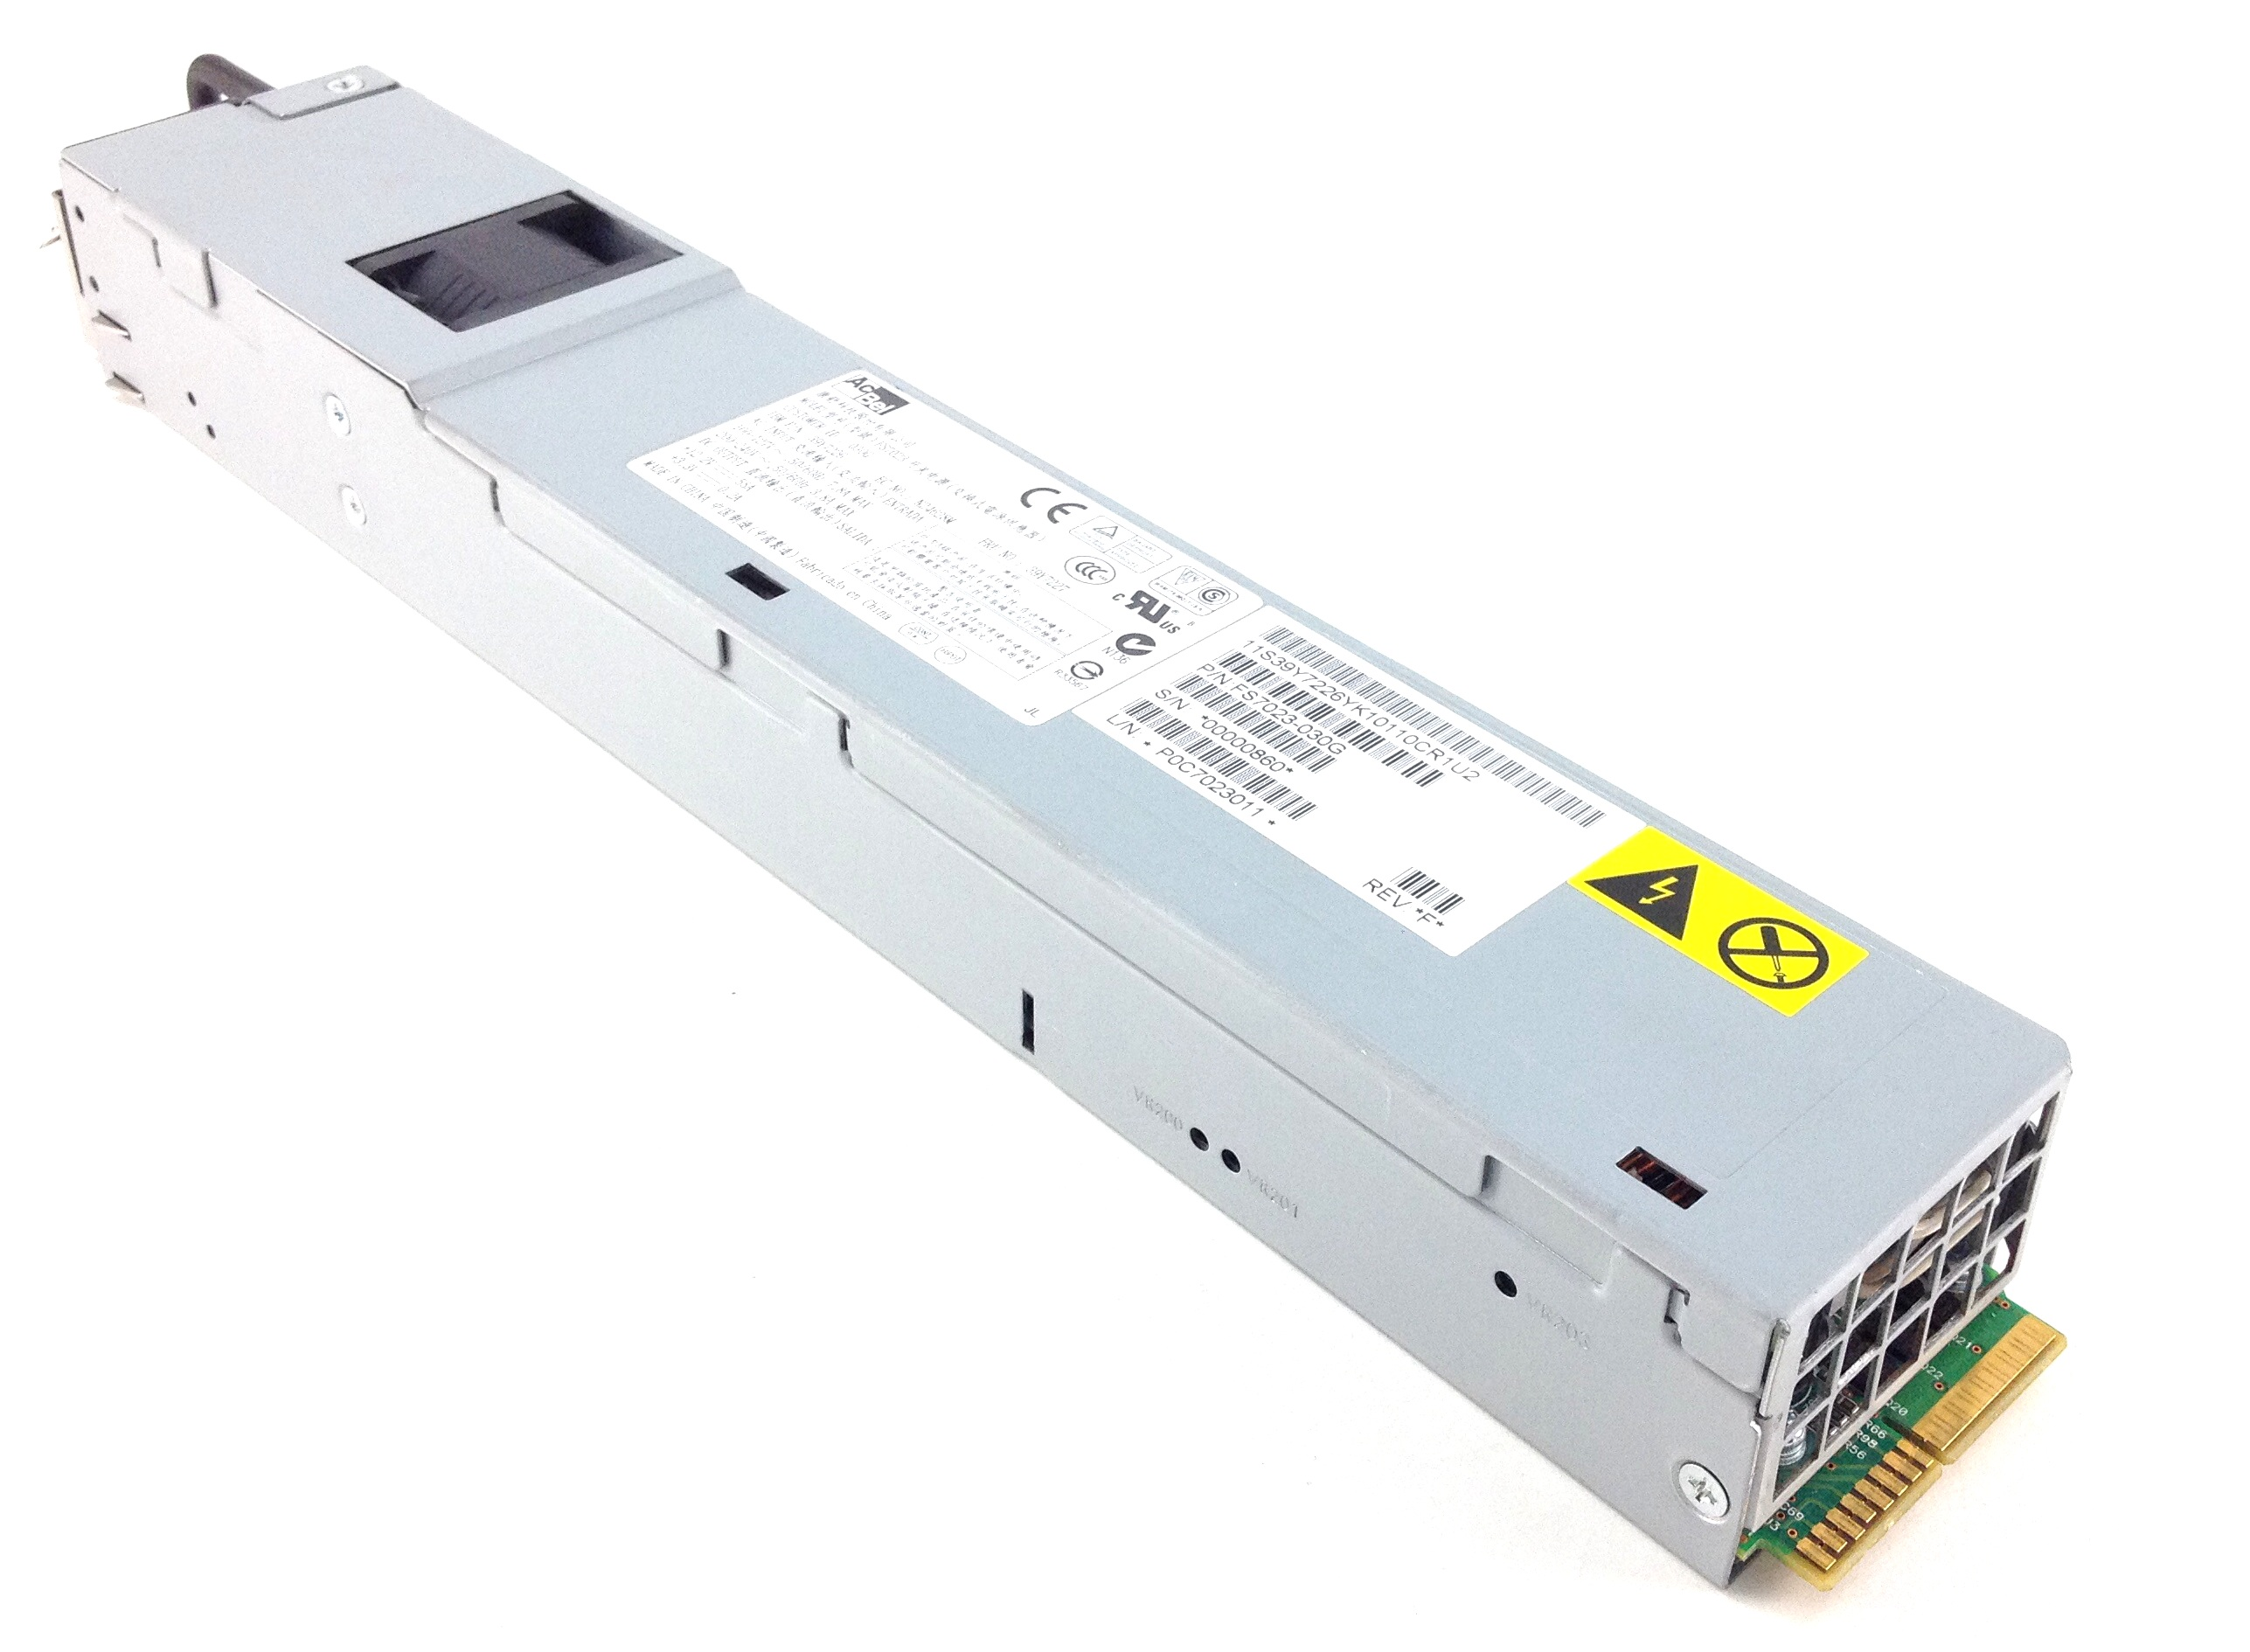 IBM X3550 X3650 M2 M3 675W POWER SUPPLY (39Y7227)